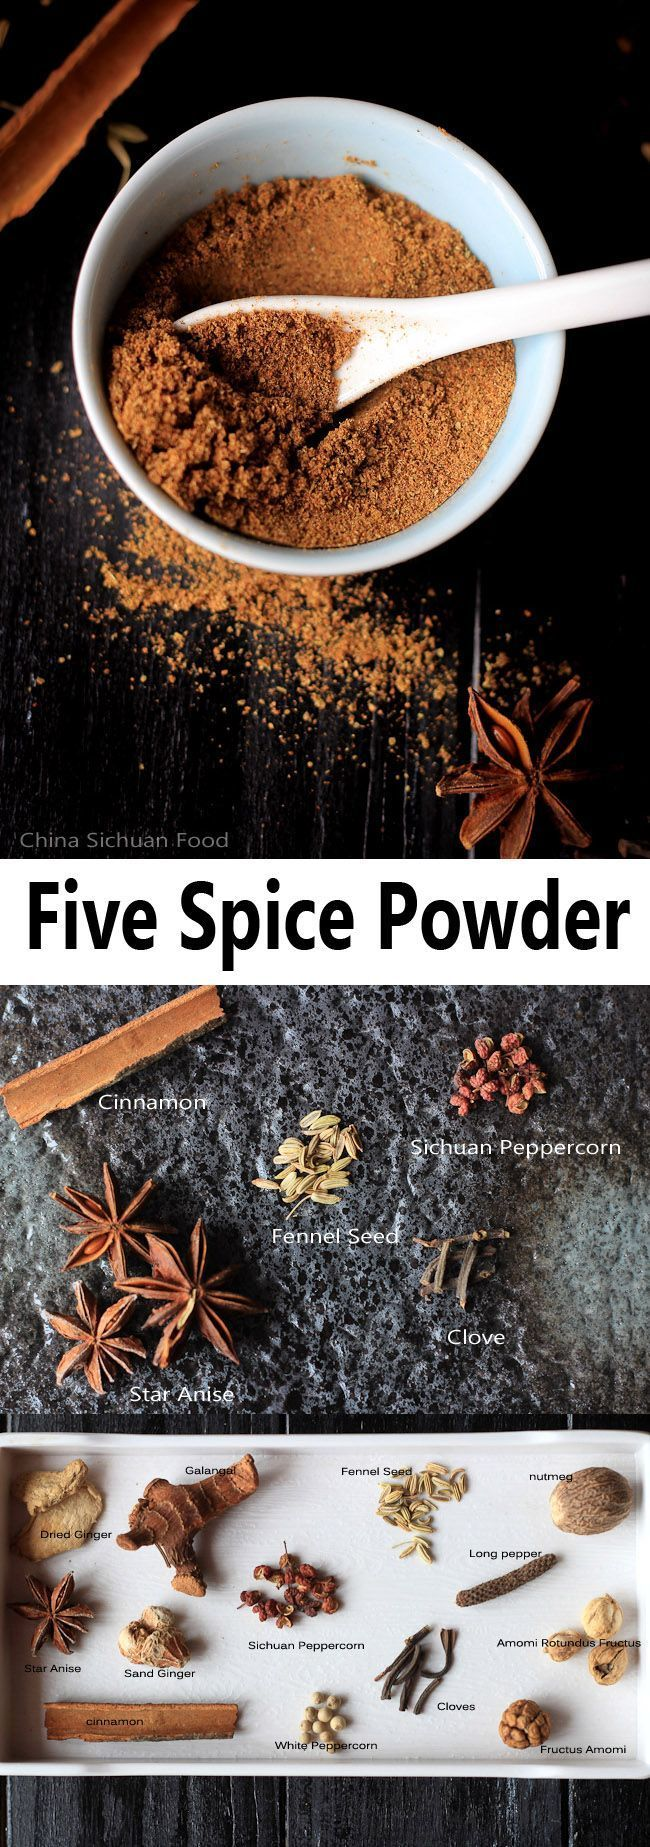 Chinese Five Spice Powder | China Sichuan Food